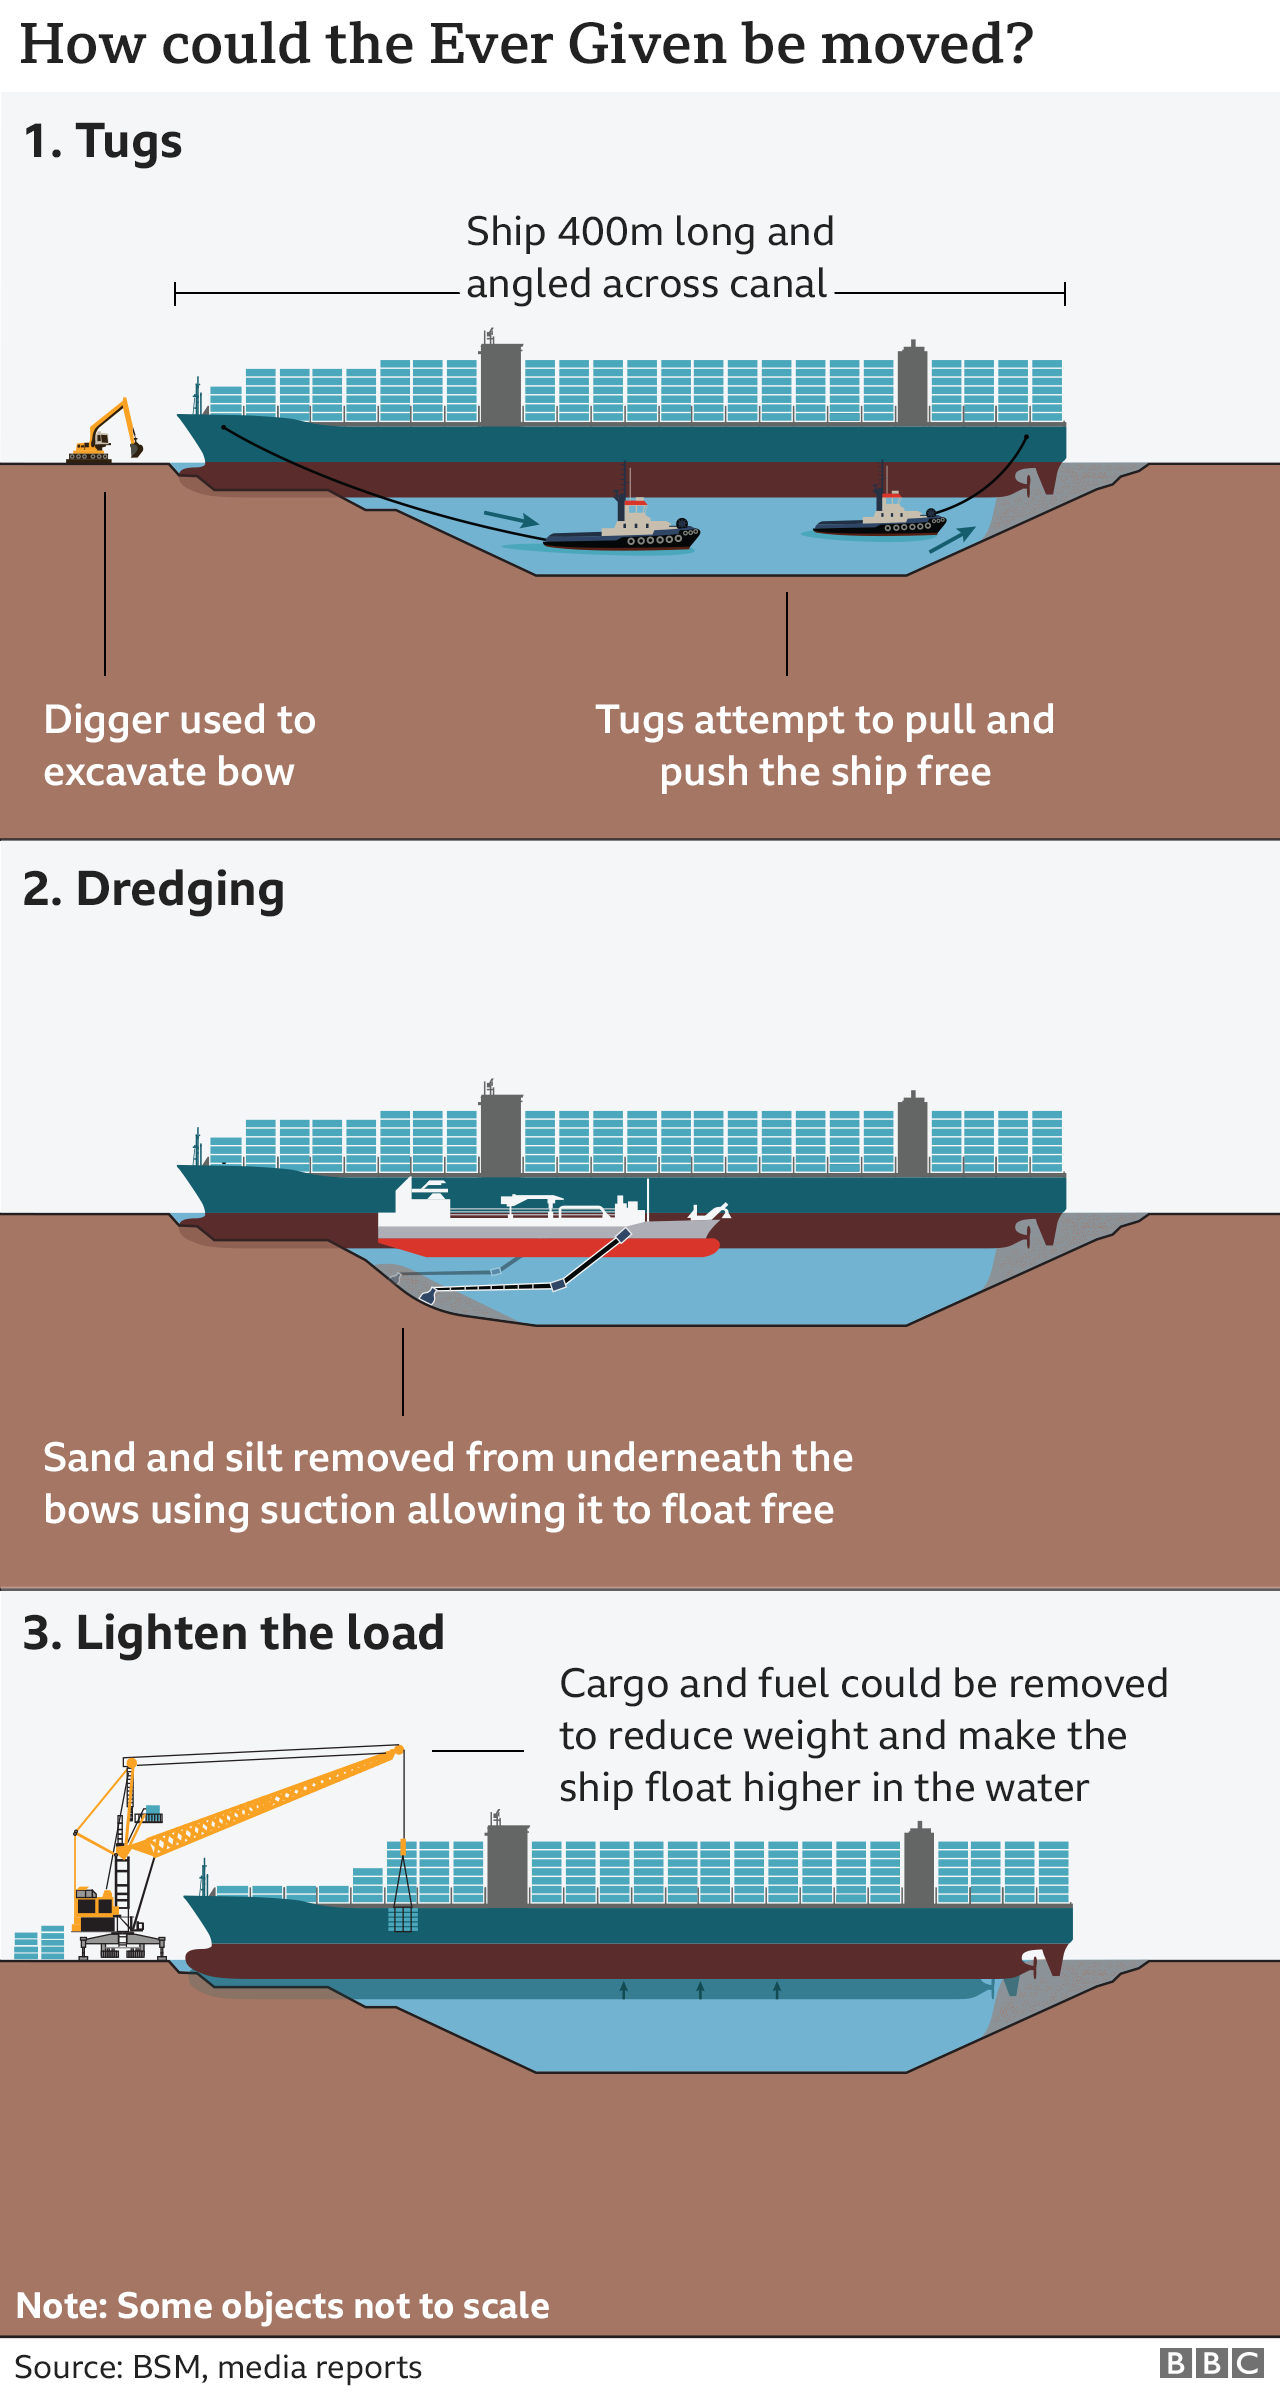 Graphic showing the three main ways in which salvage teams will attempt to refloat the Ever Given. Tugs could be used to pull the ship away from the banks of the Suez canal. Dredgers could use suction to remove sand and silt from below the vessel. And cargo and fuel could be removed to allow the ship to float higher in the water